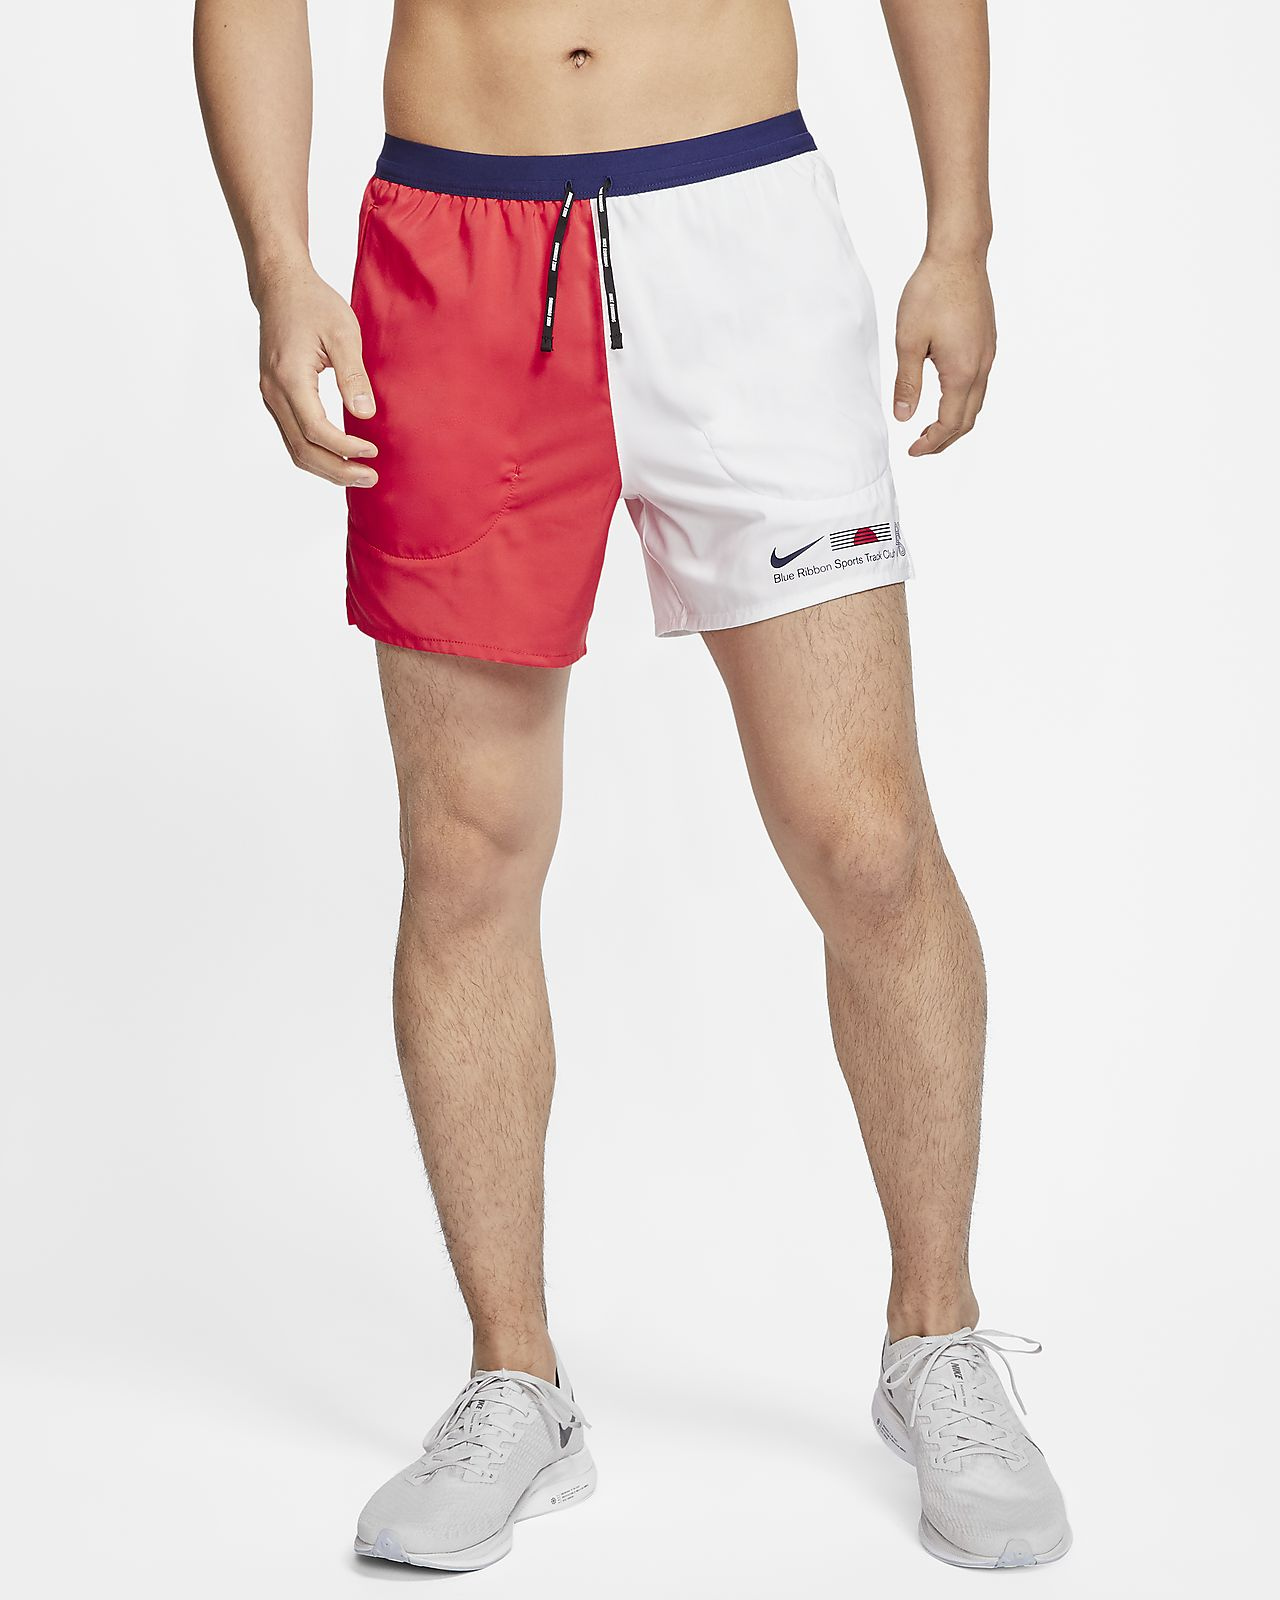 Nike Flex Stride Blue Ribbon Sports Men's 9cm (approx.) Brief-Lined Running Shorts